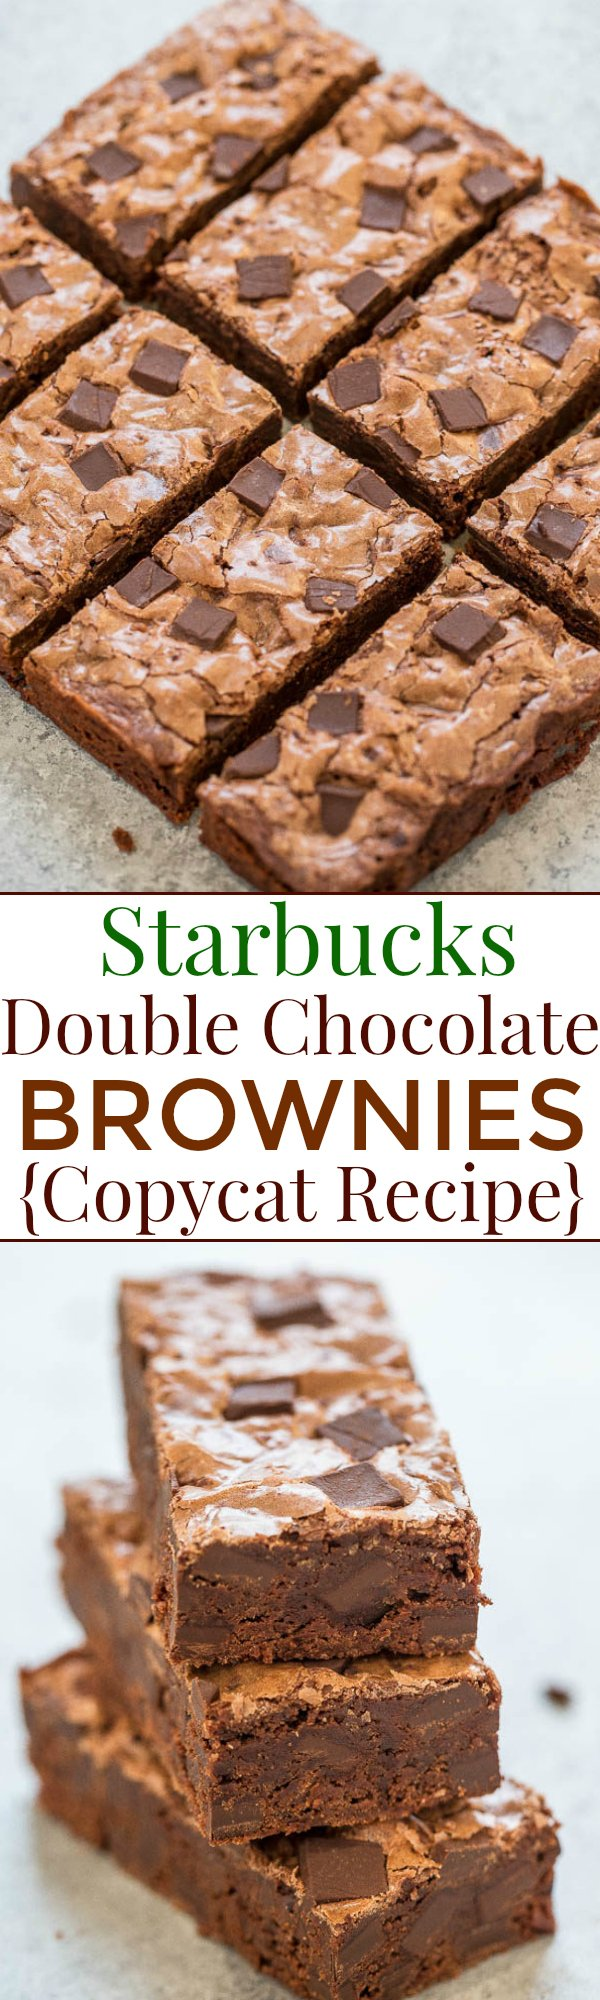 Two picture collage of Starbucks double chocolate brownies with graphic